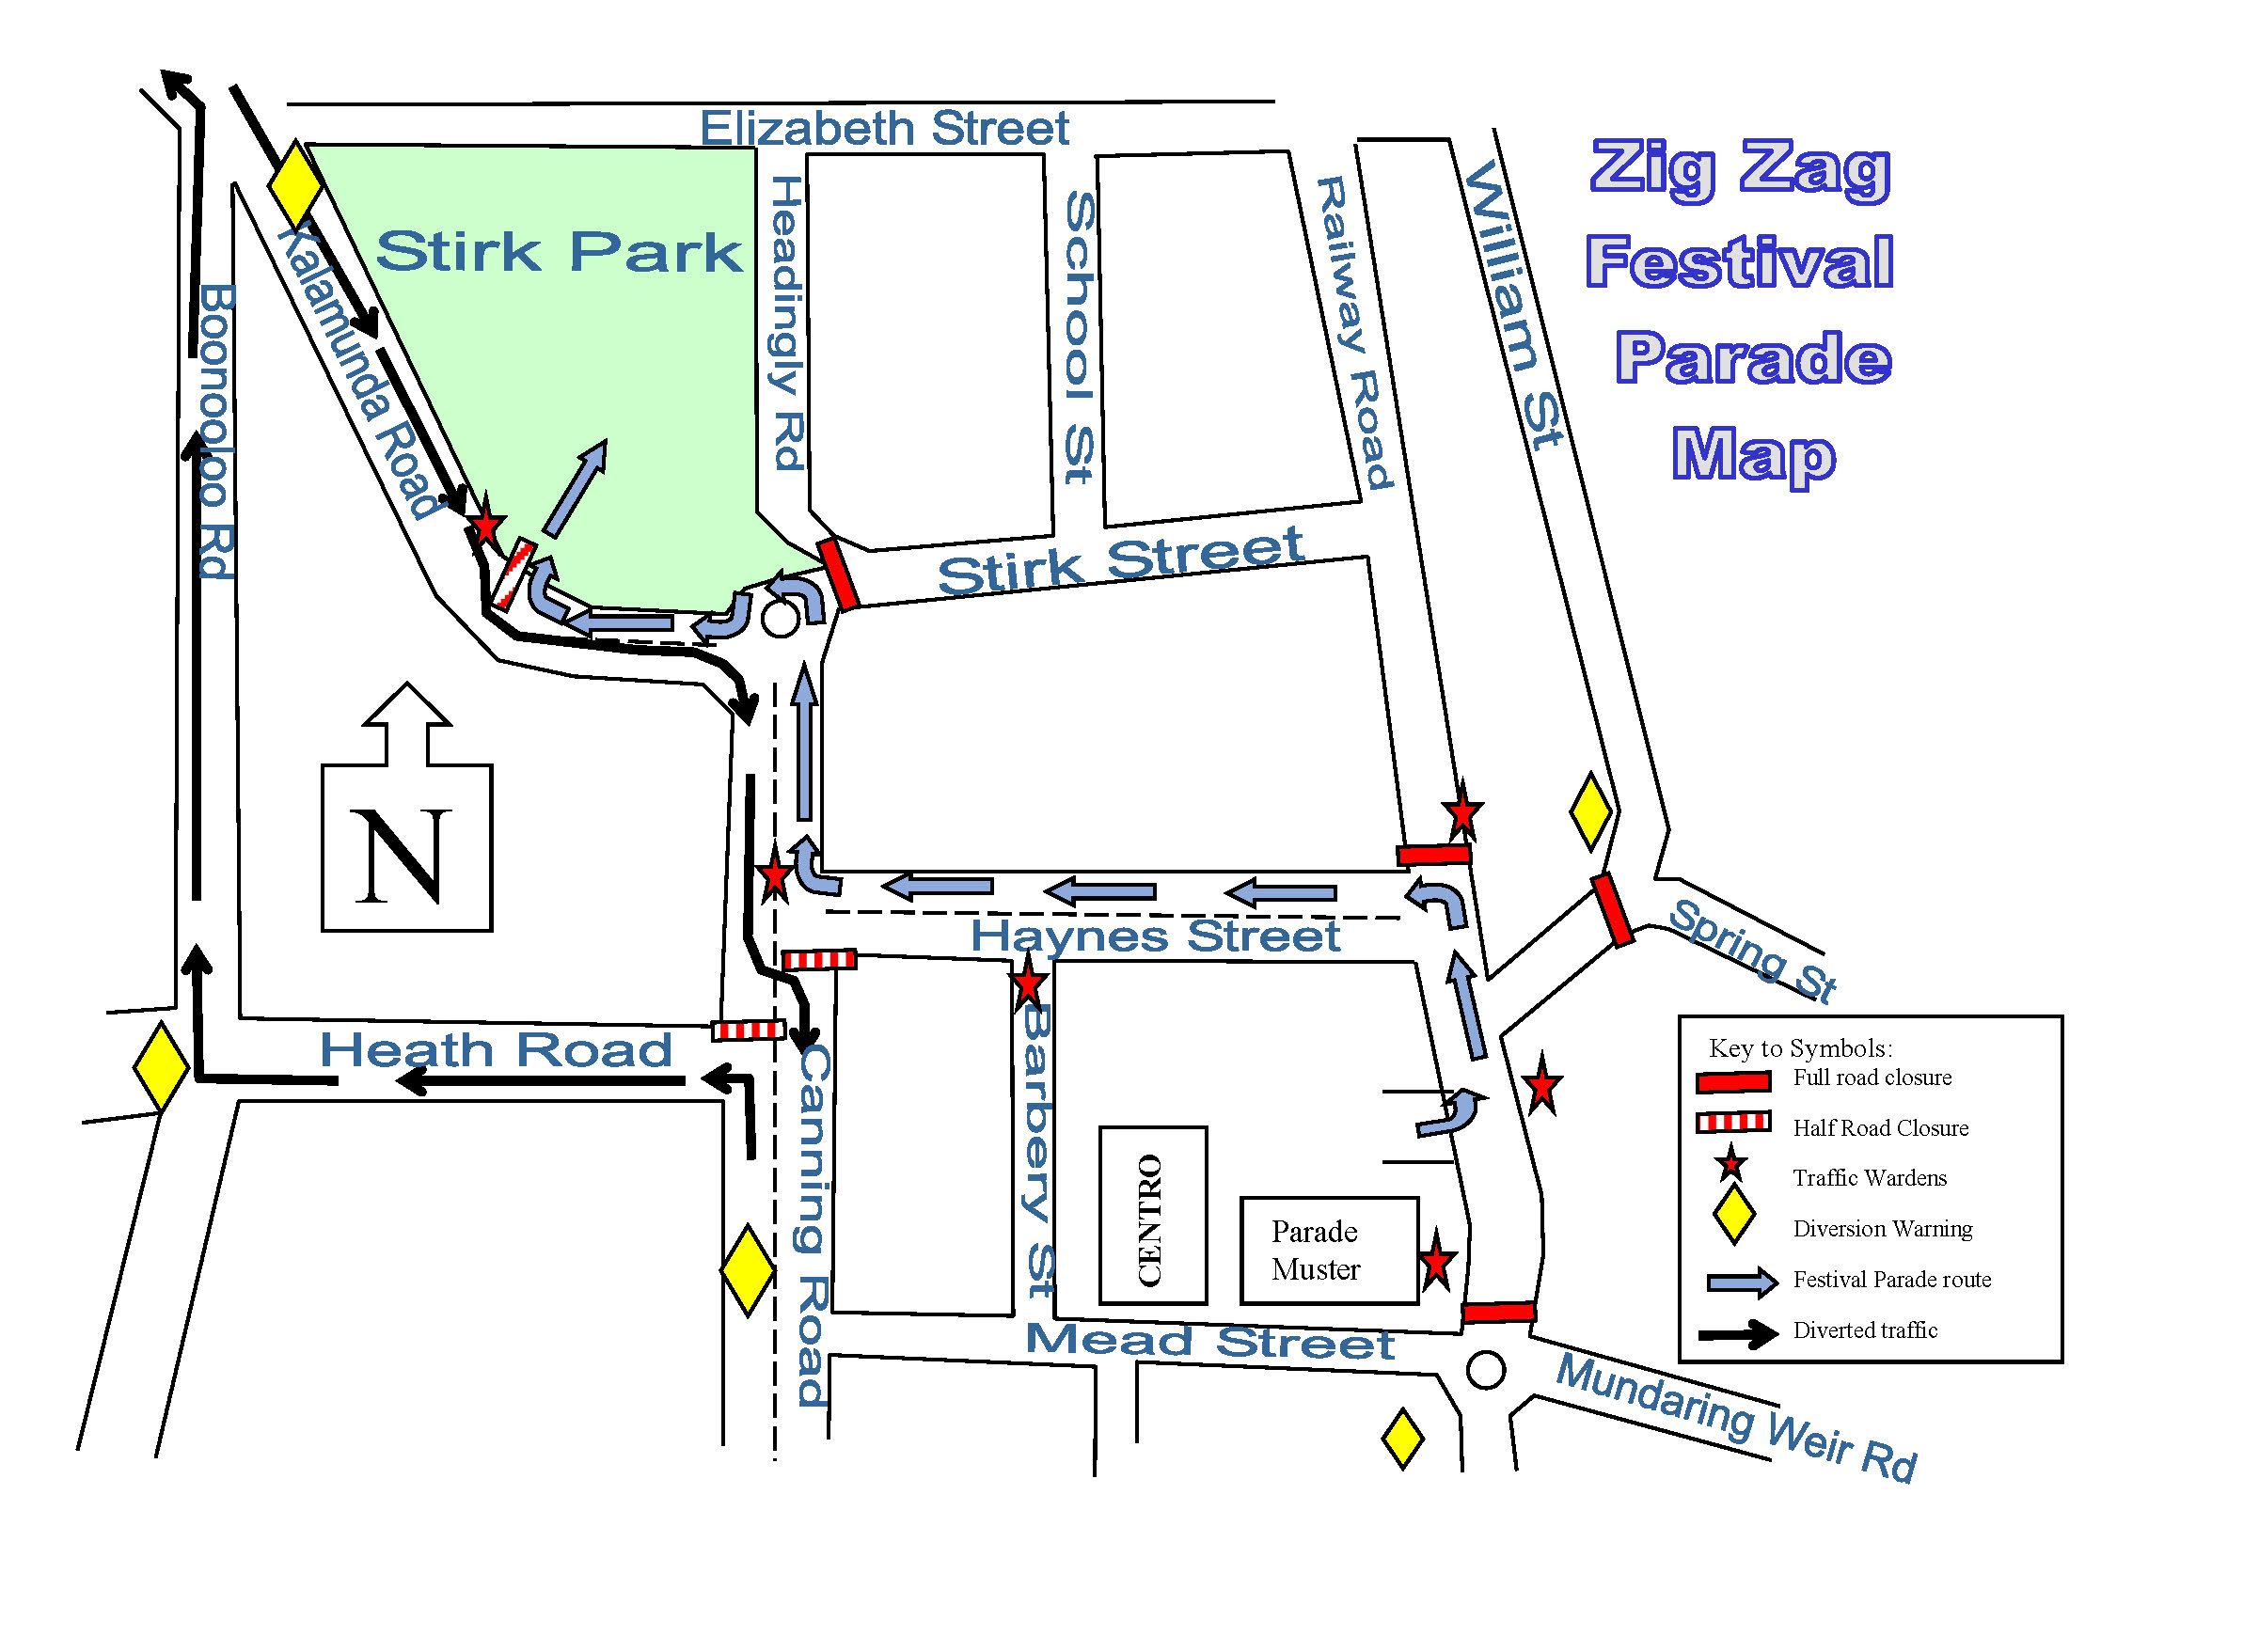 Map of the 2016 road closure for the Parade on 30 October 5:30pm